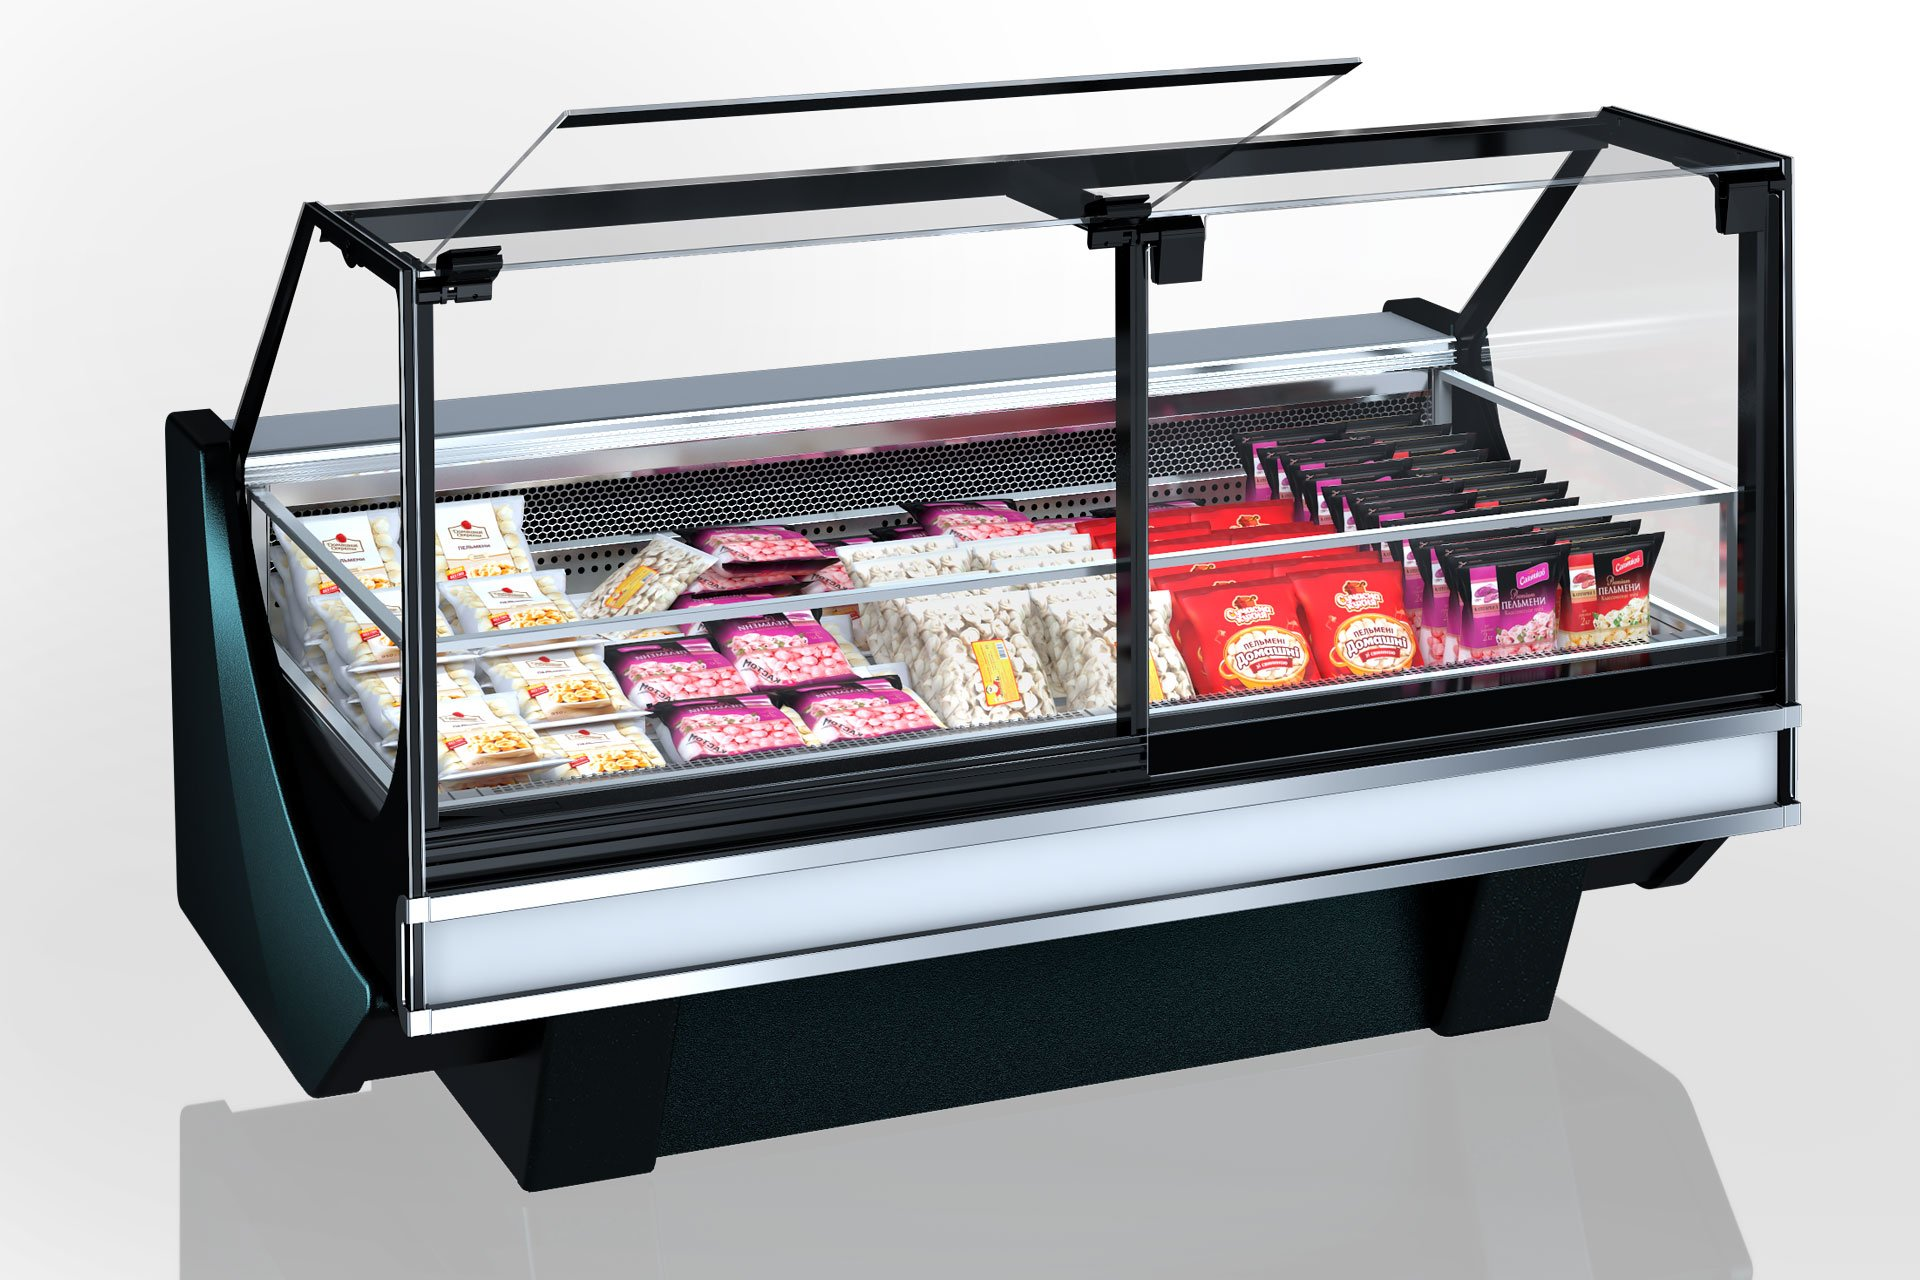 Refrigerated counter missouri cold diamond MC 126 LT PS